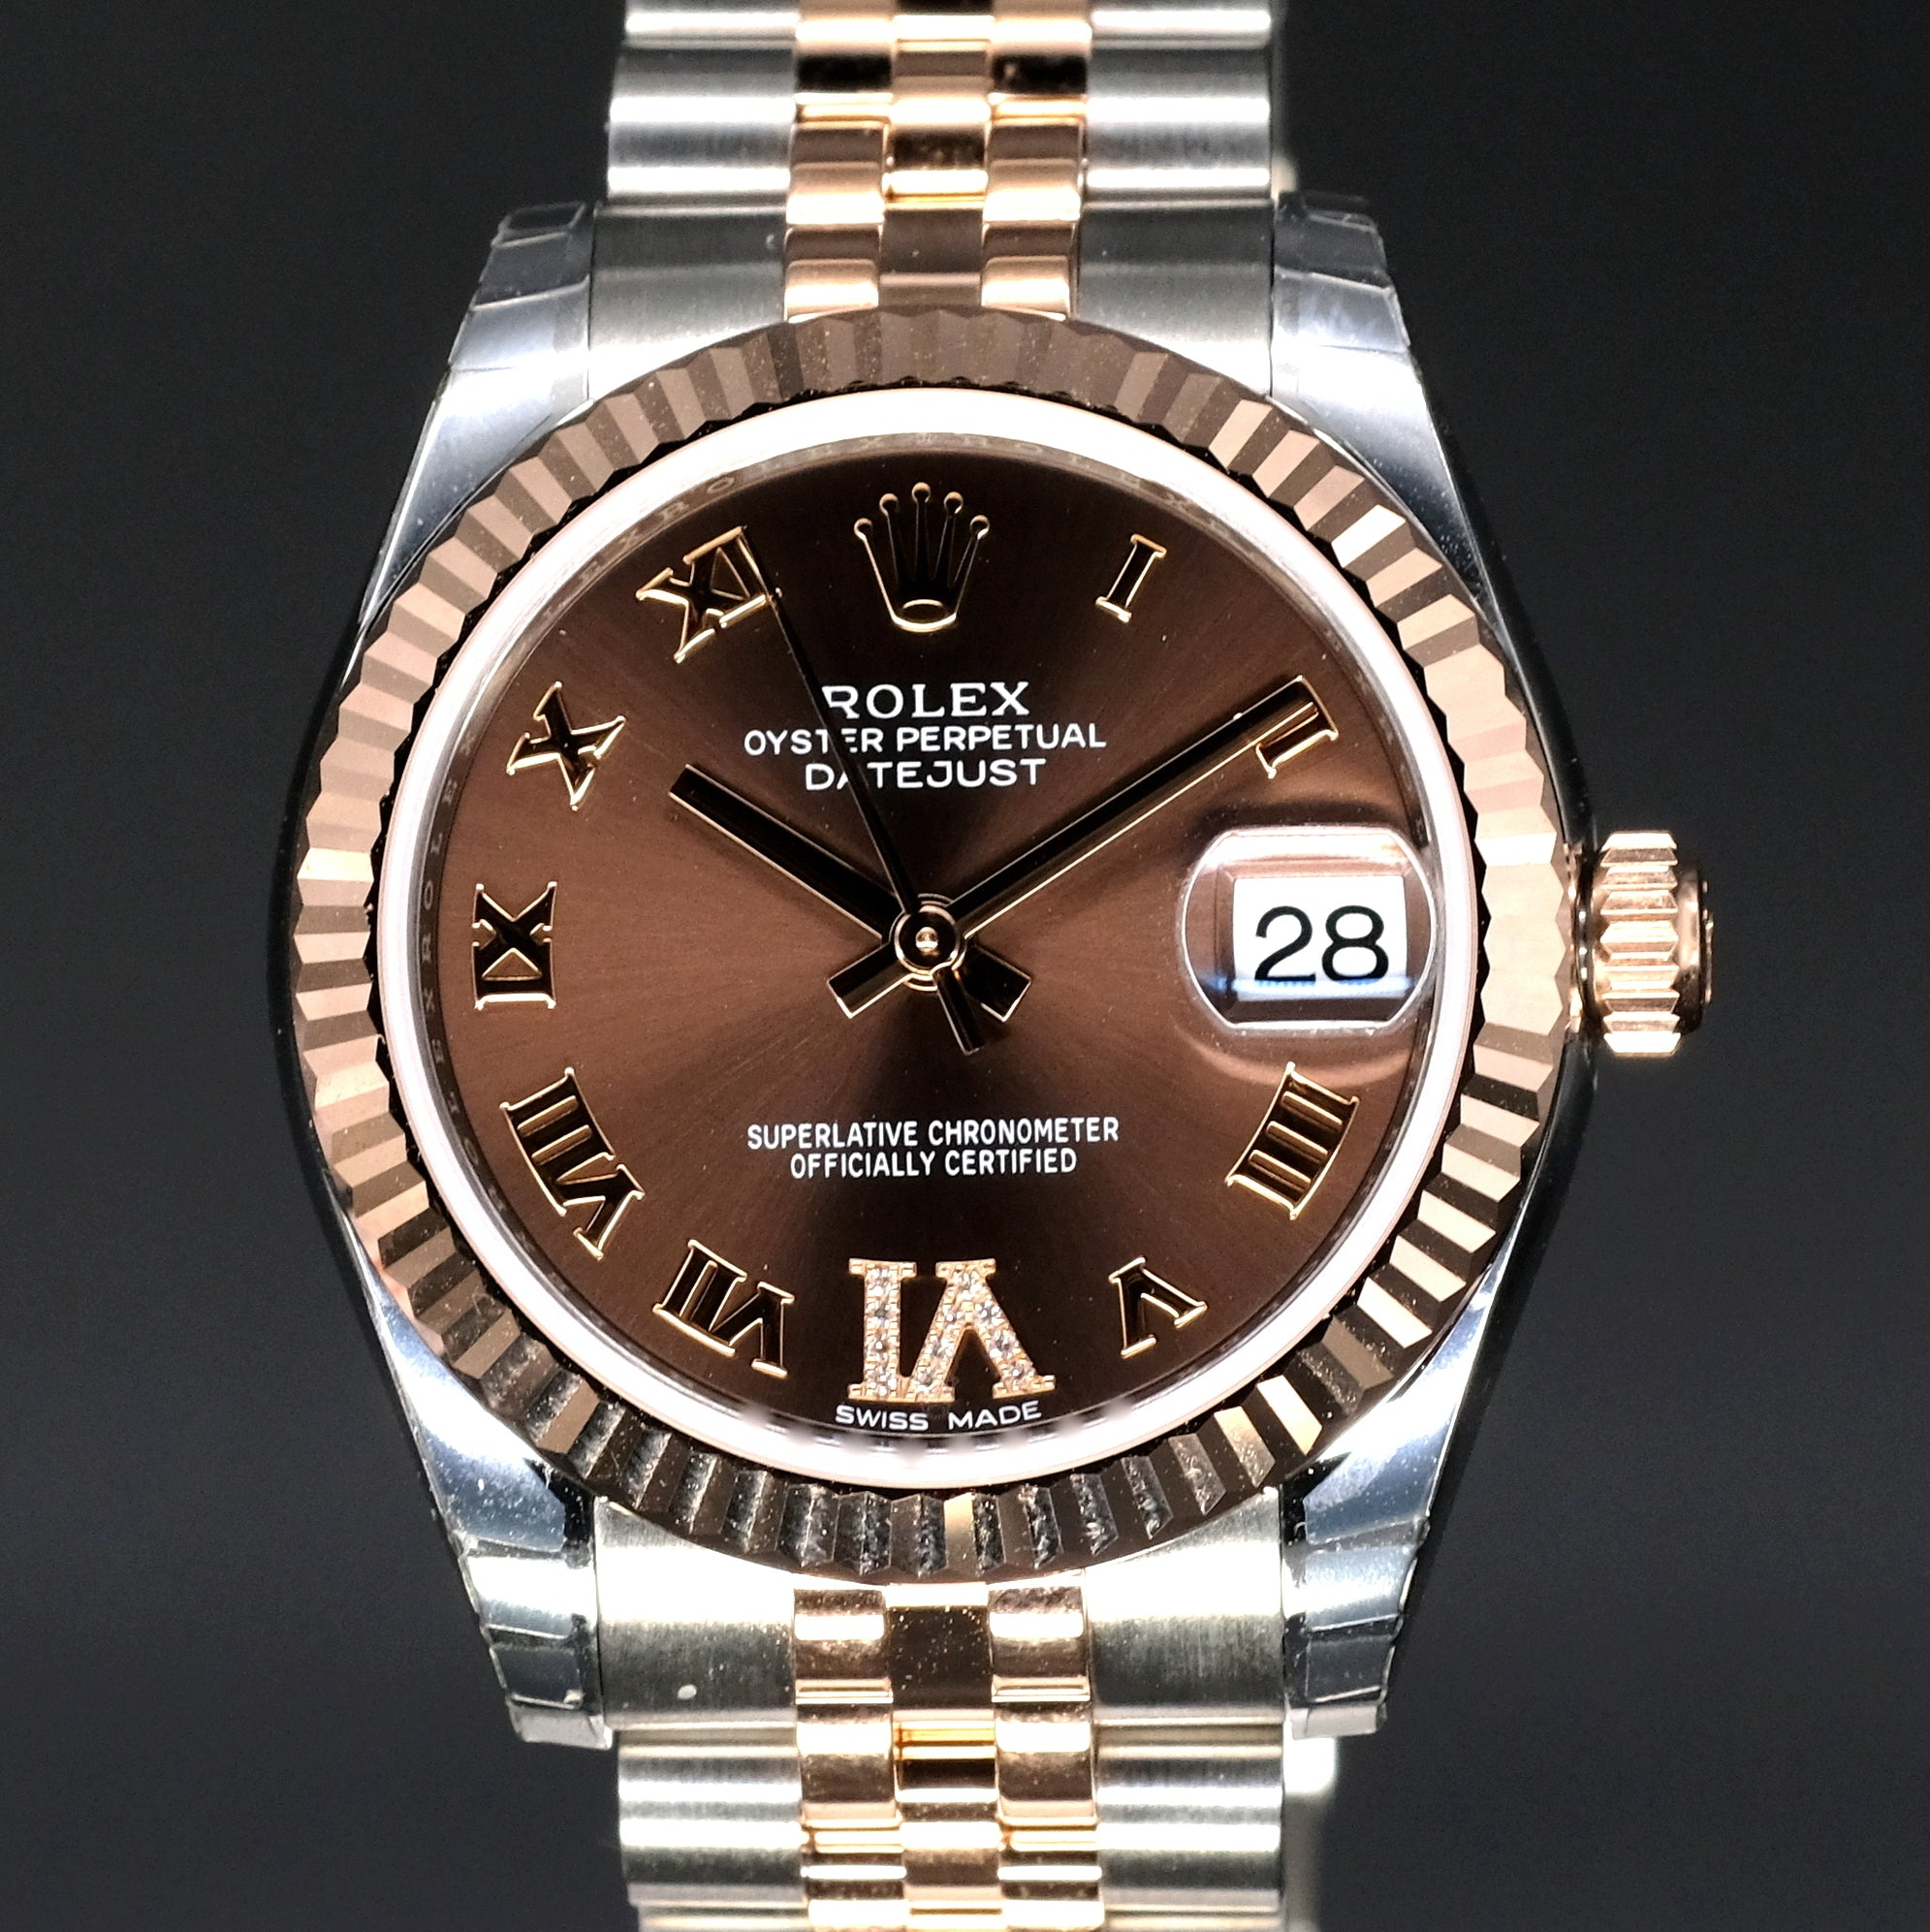 [Brand New Watch] Rolex Datejust 31mm 178271 Chocolate Dial with VI Diamonds (Jubilee Bracelet)